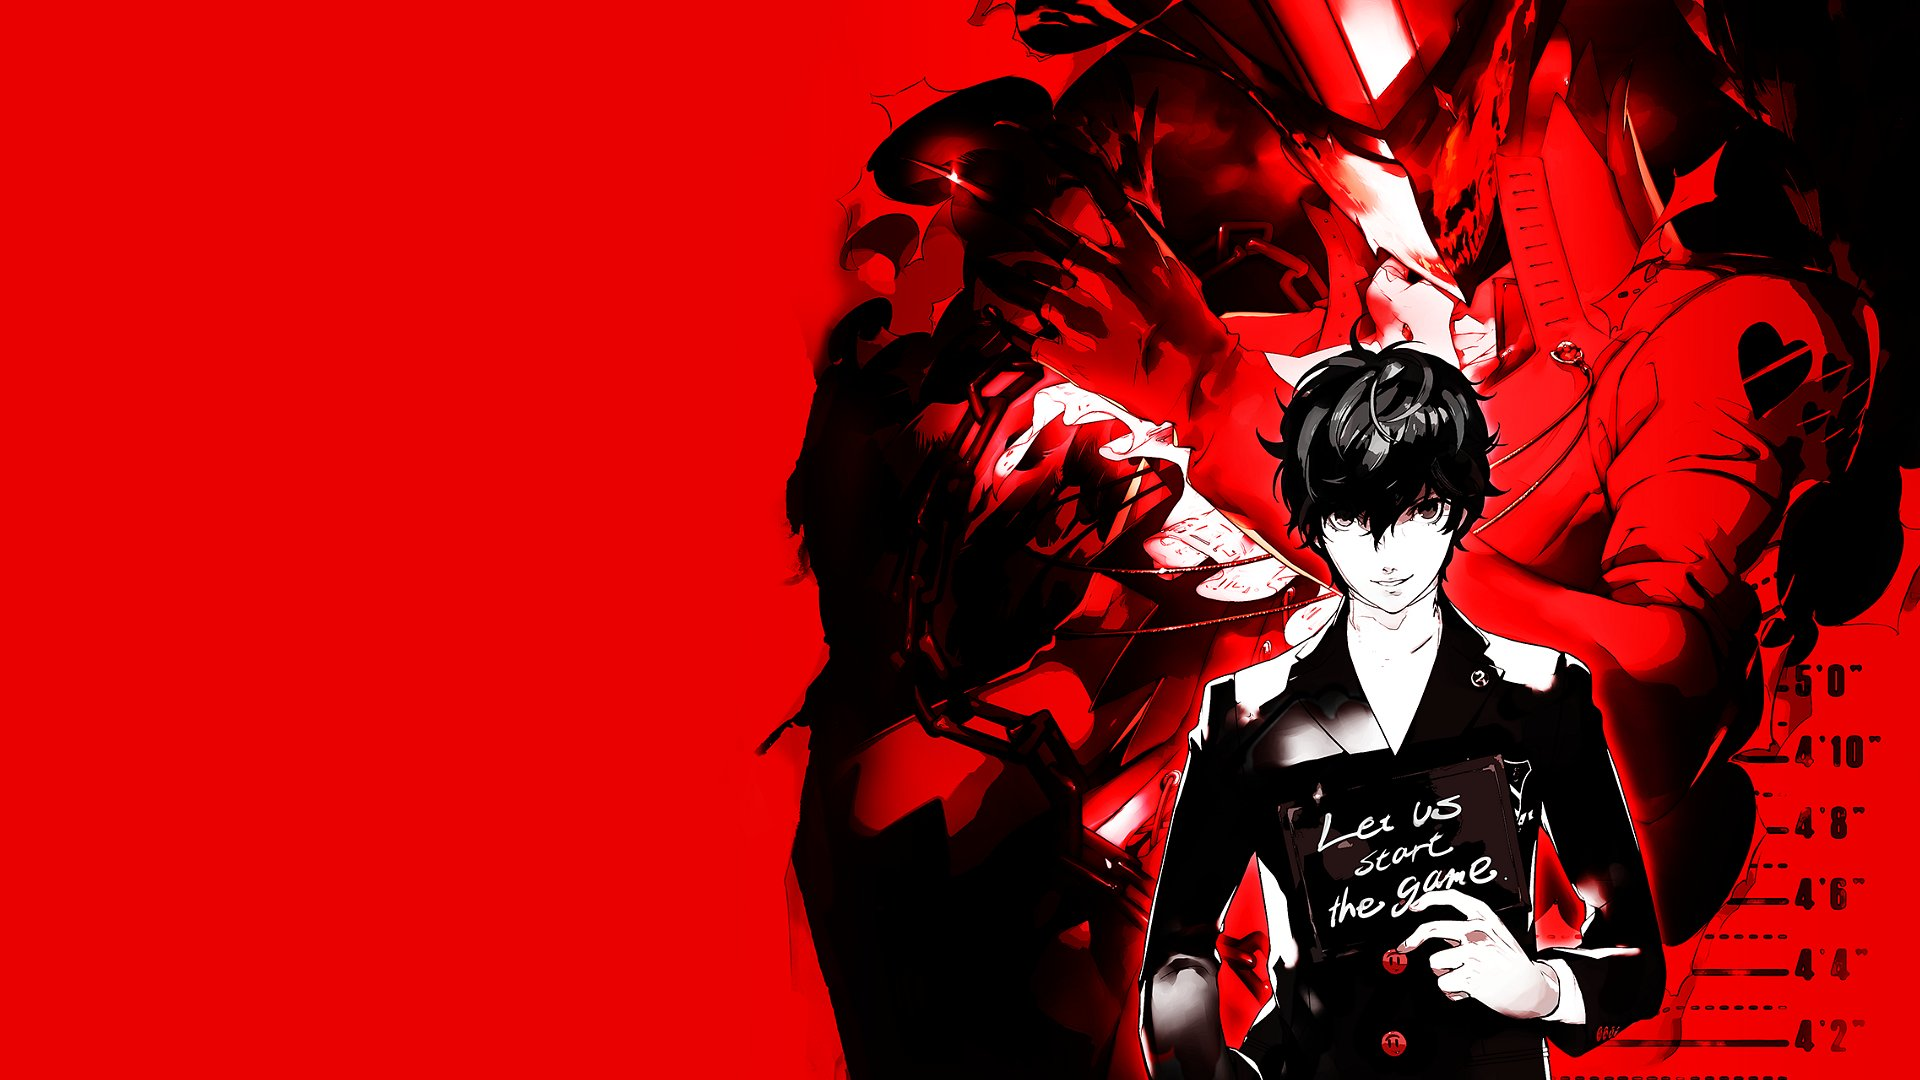 Persona 5 Ps Wallpapers